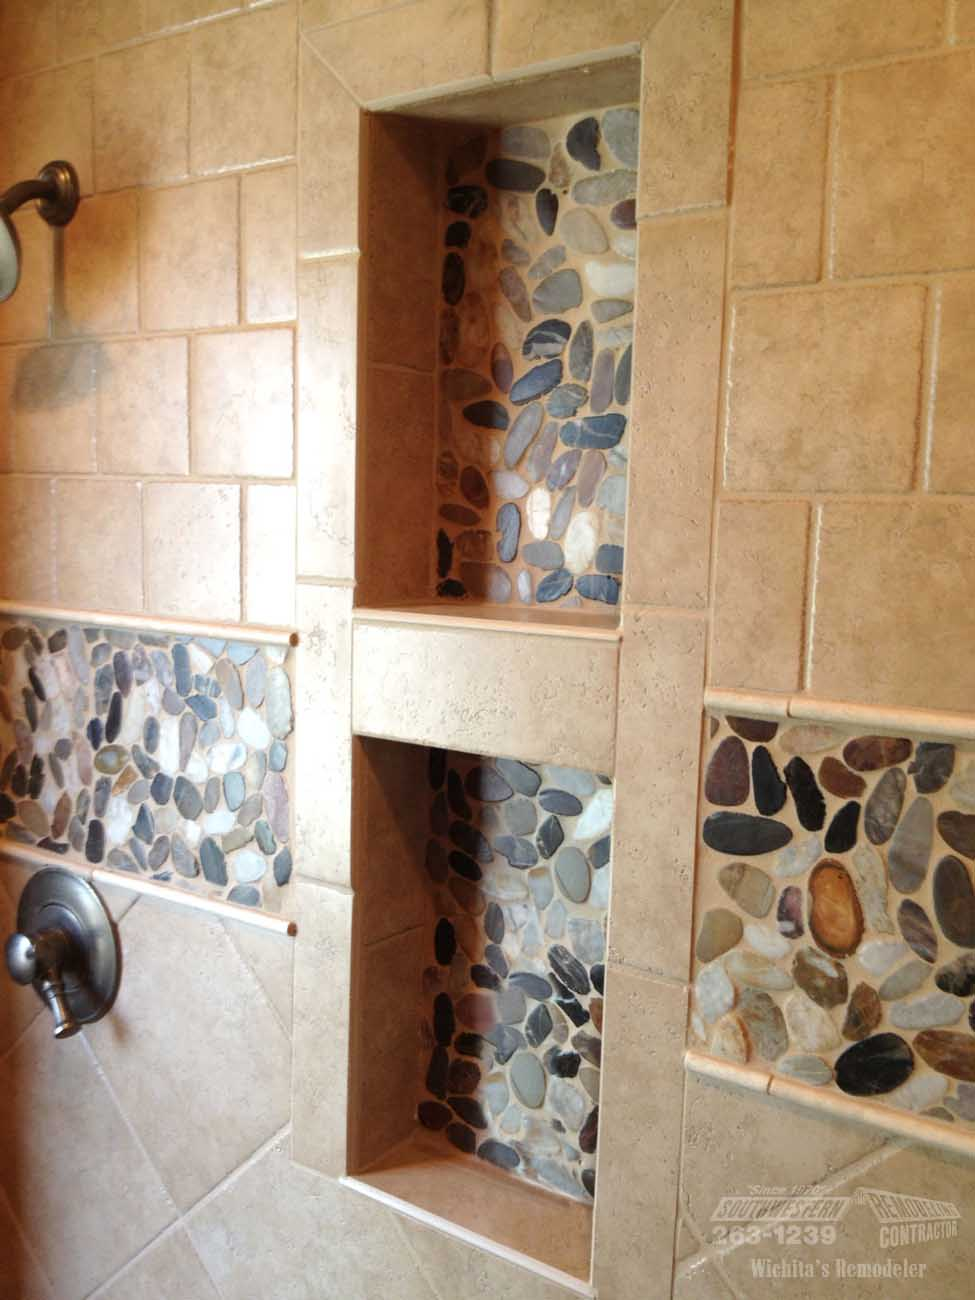 Bathroom Remodeling Wichita Ks Delectable Bathroom Remodeling  Southwestern Remodeling  Wichita Review